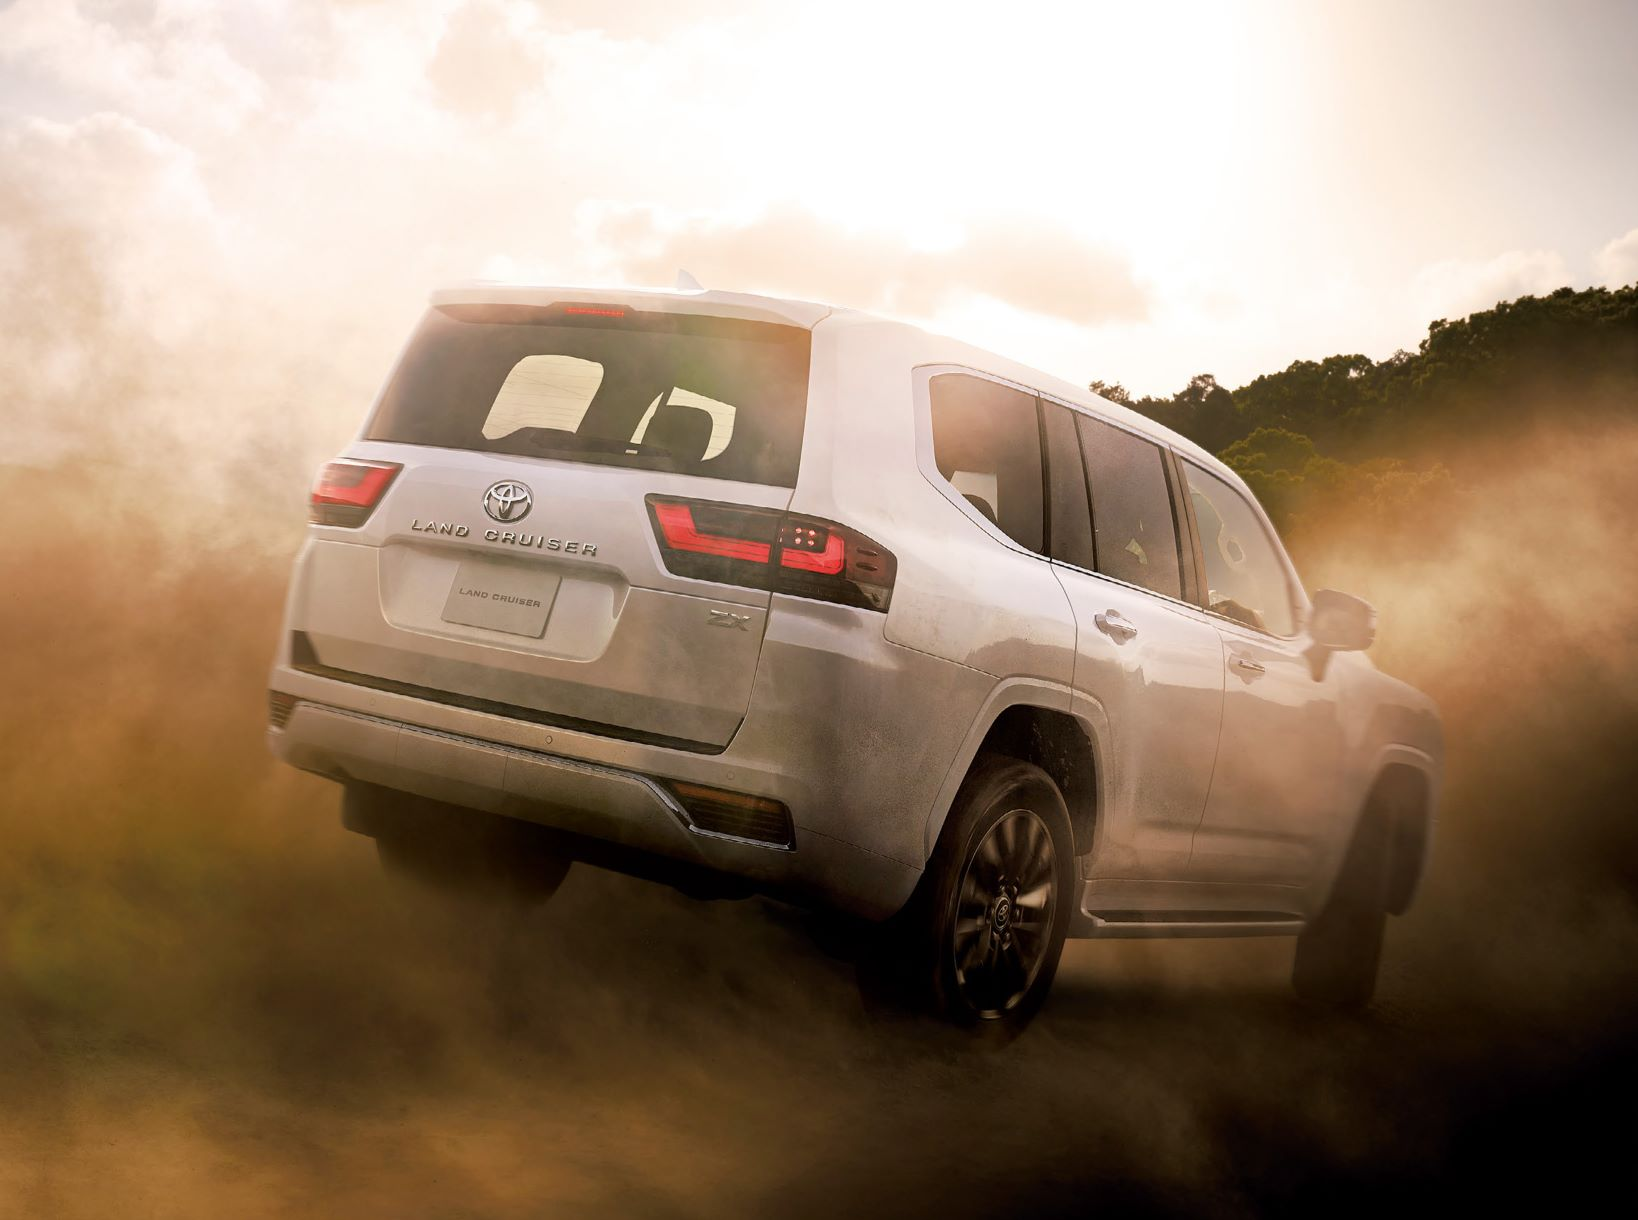 Rear shot of the Toyota Land Cruiser in sand